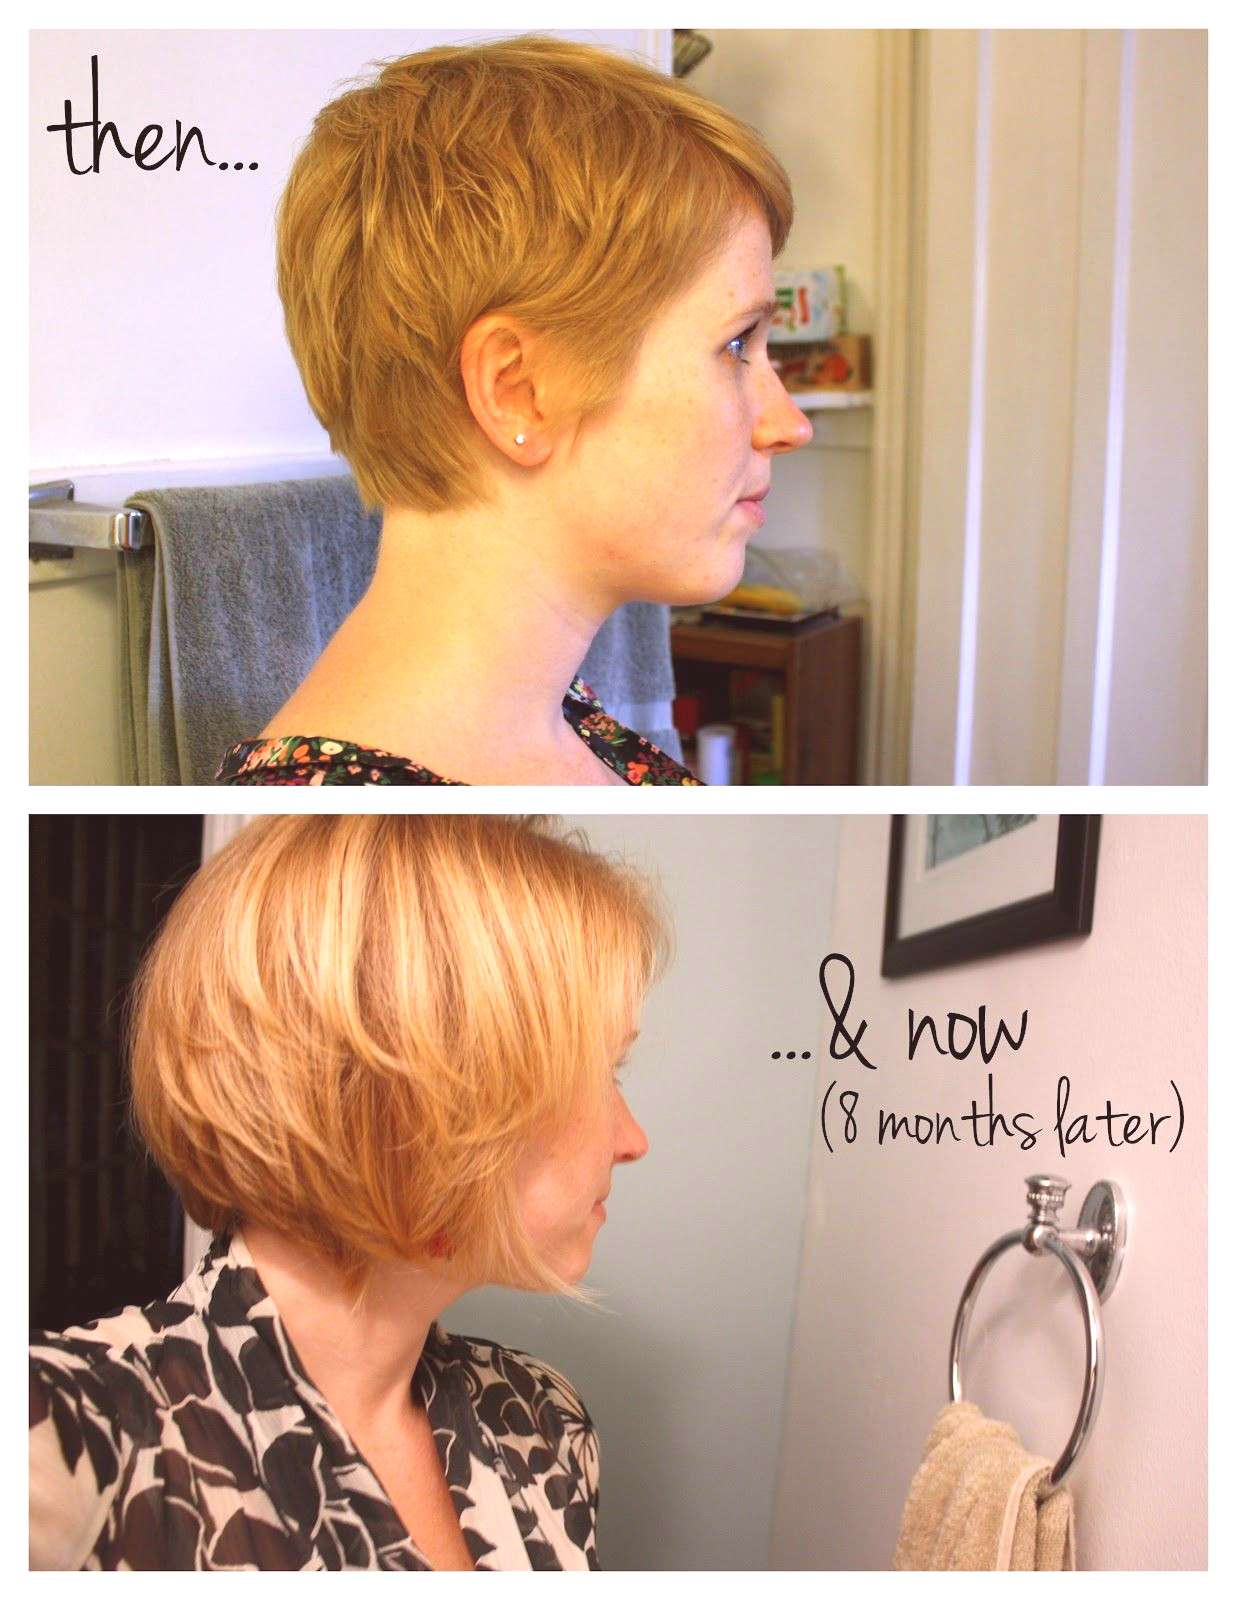 eight months to grow out a pixie, this lady knows what she's talking about when it comes to the sho